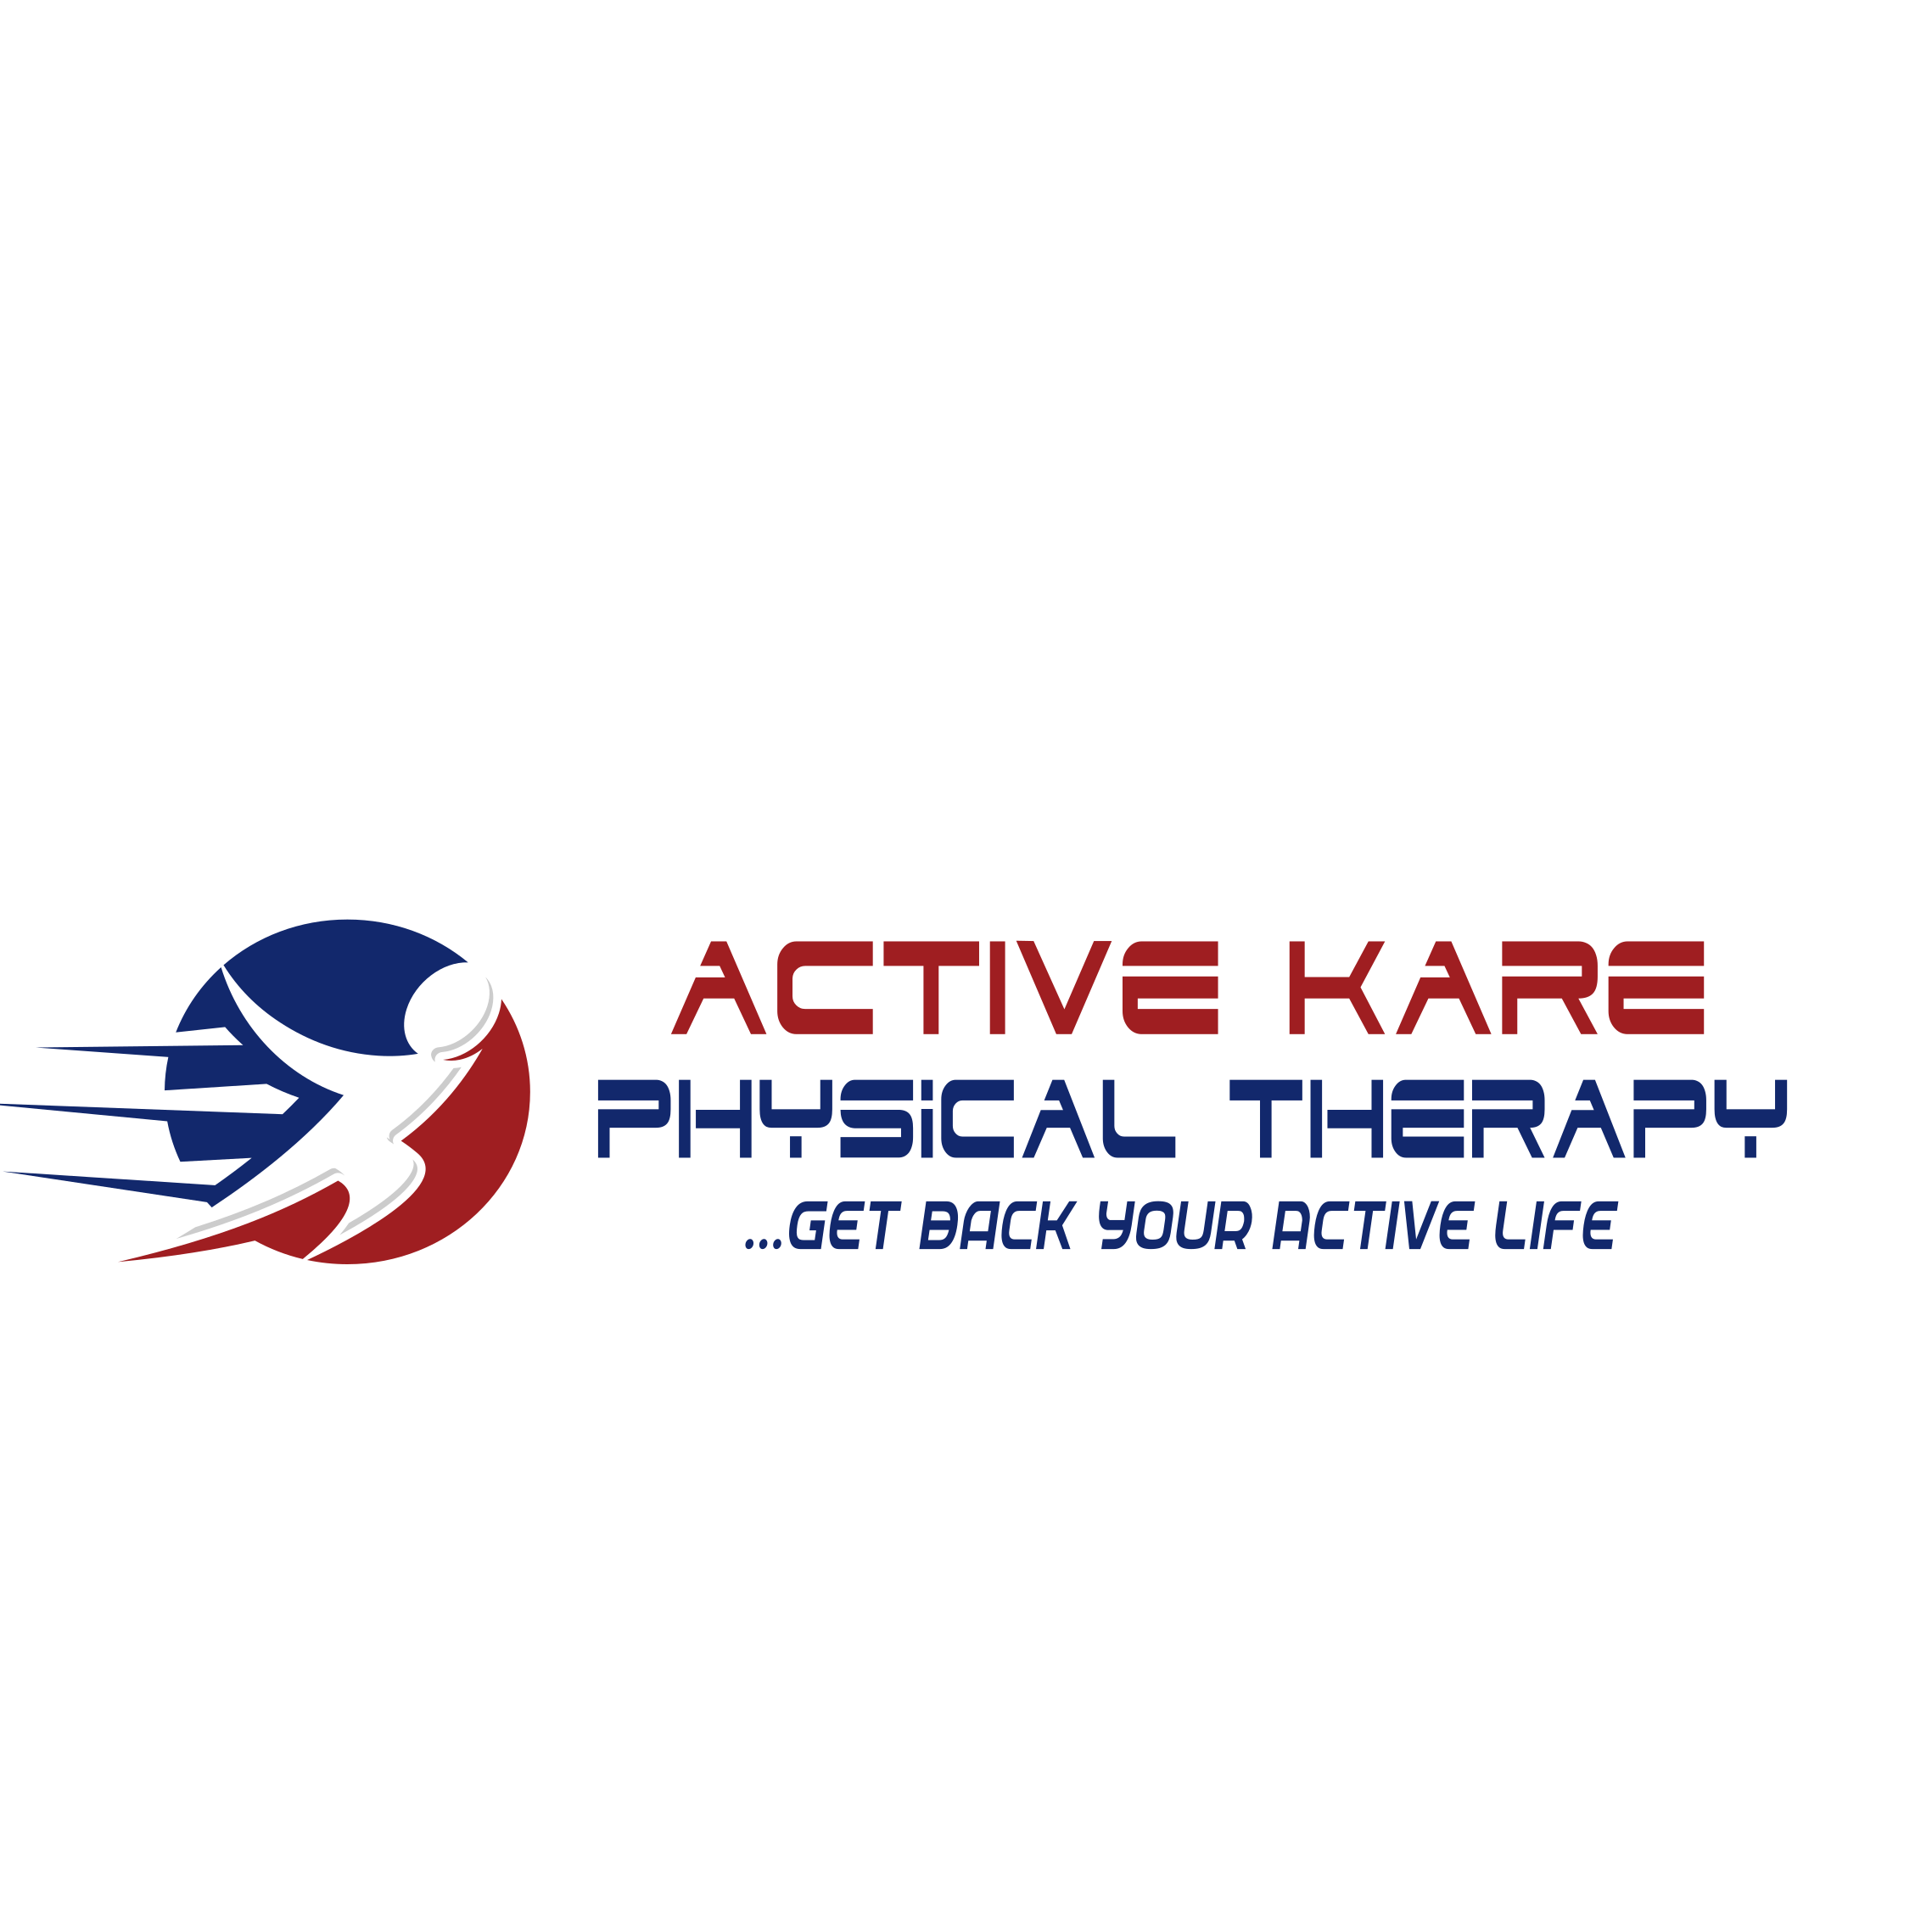 Active Kare Physical Therapy